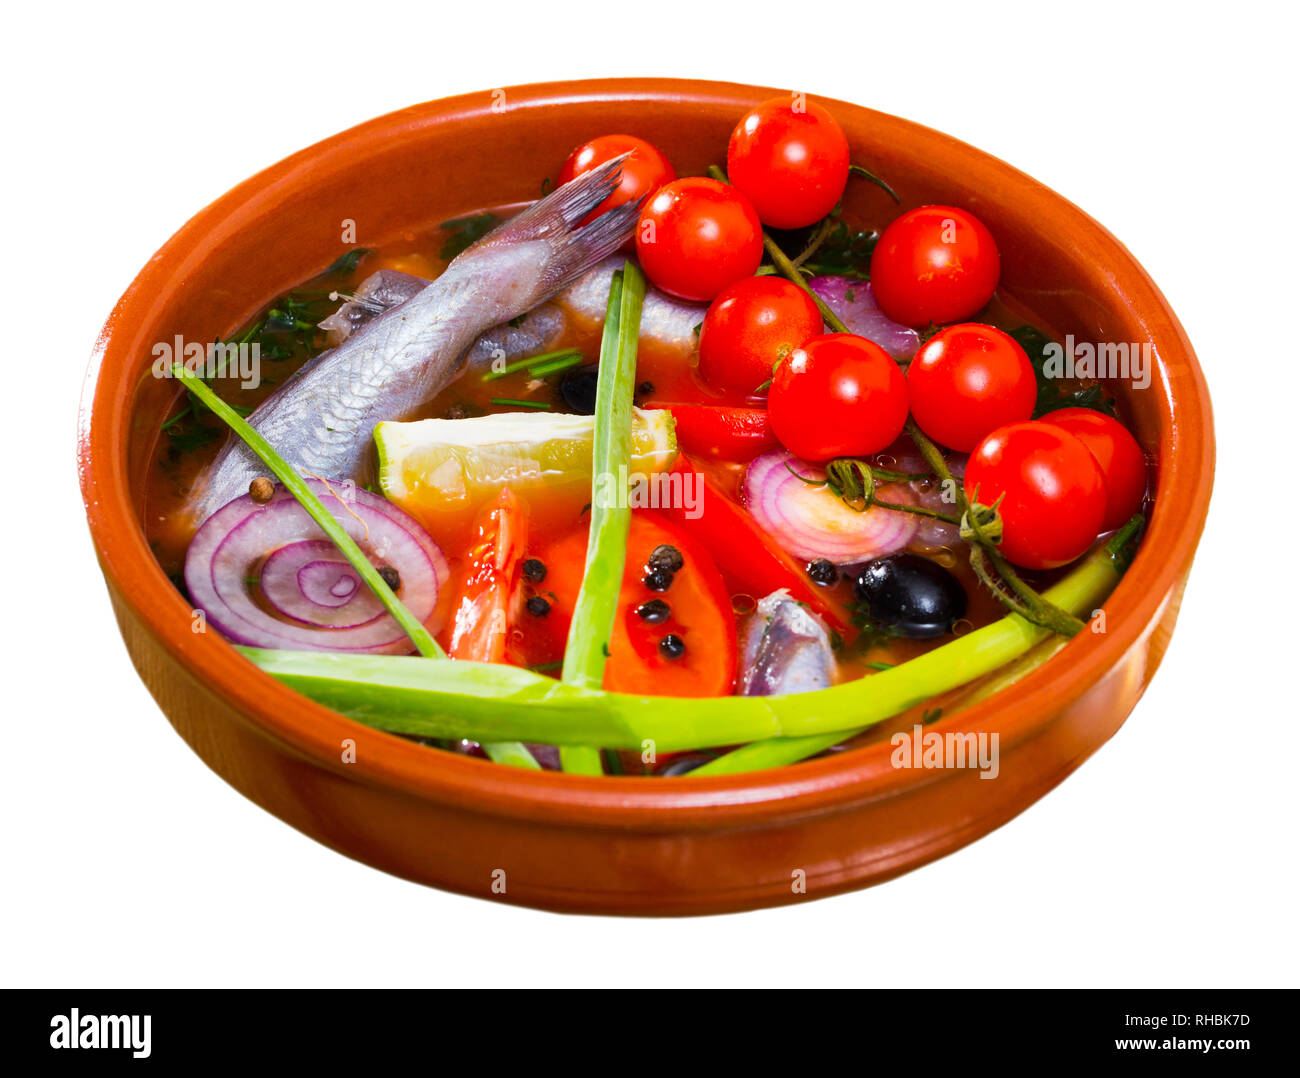 Fisher soup from whiting with tomatoes, red onion, bell pepper served with lemon, scallions, black olives. Isolated over white background - Stock Image